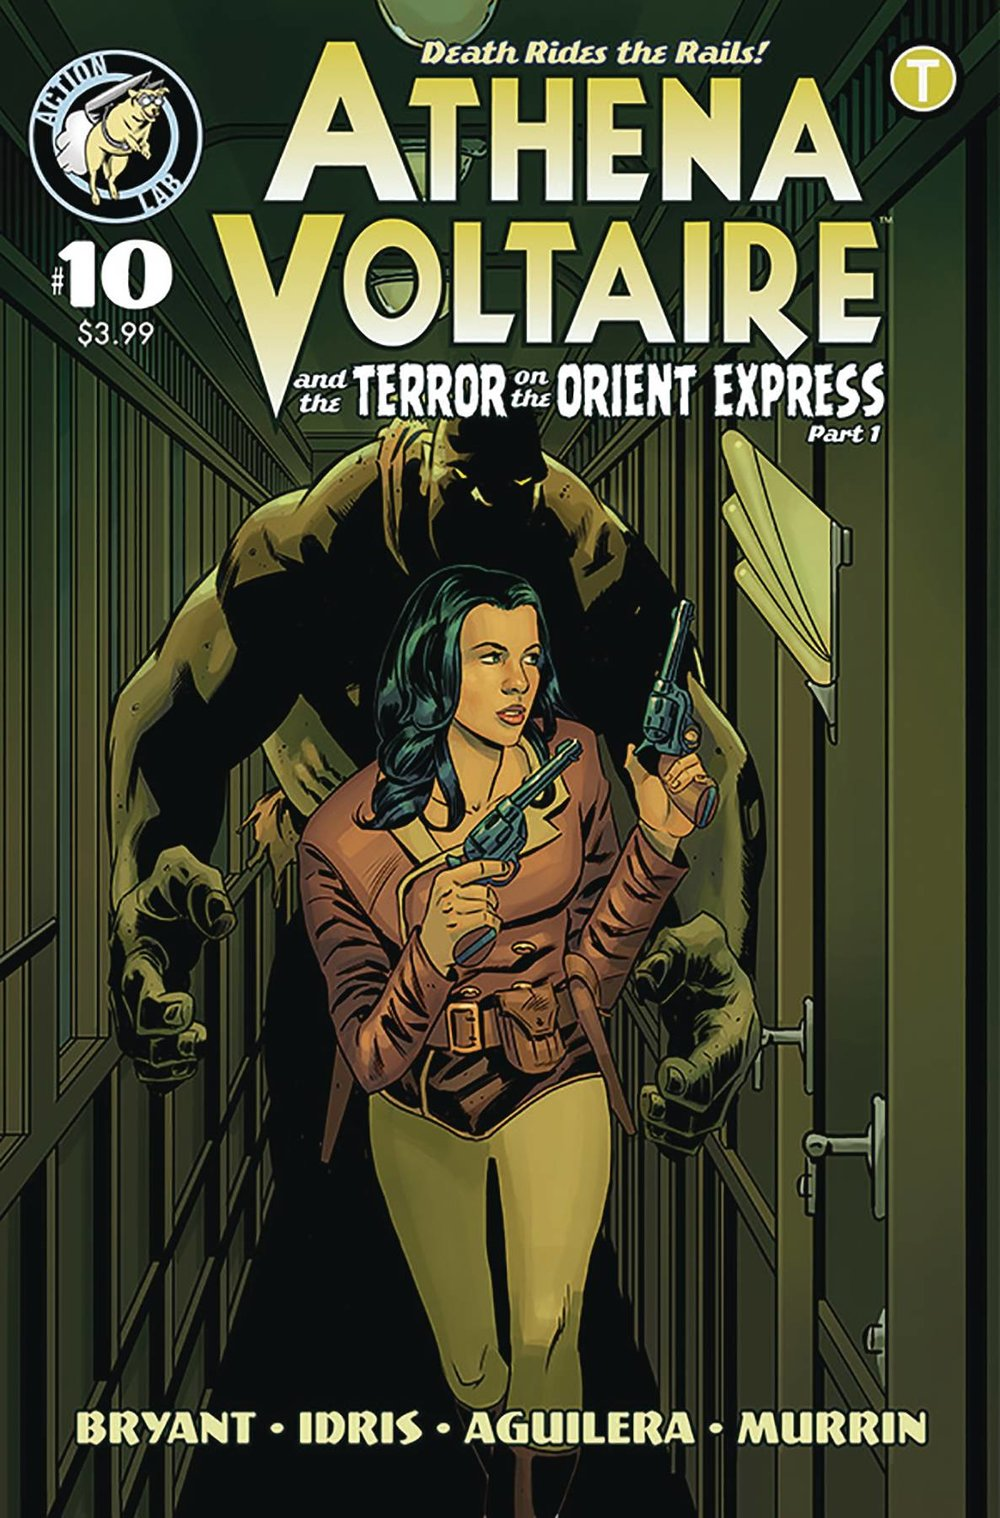 ATHENA VOLTAIRE 2018 ONGOING 10 CVR A BRYANT.jpg